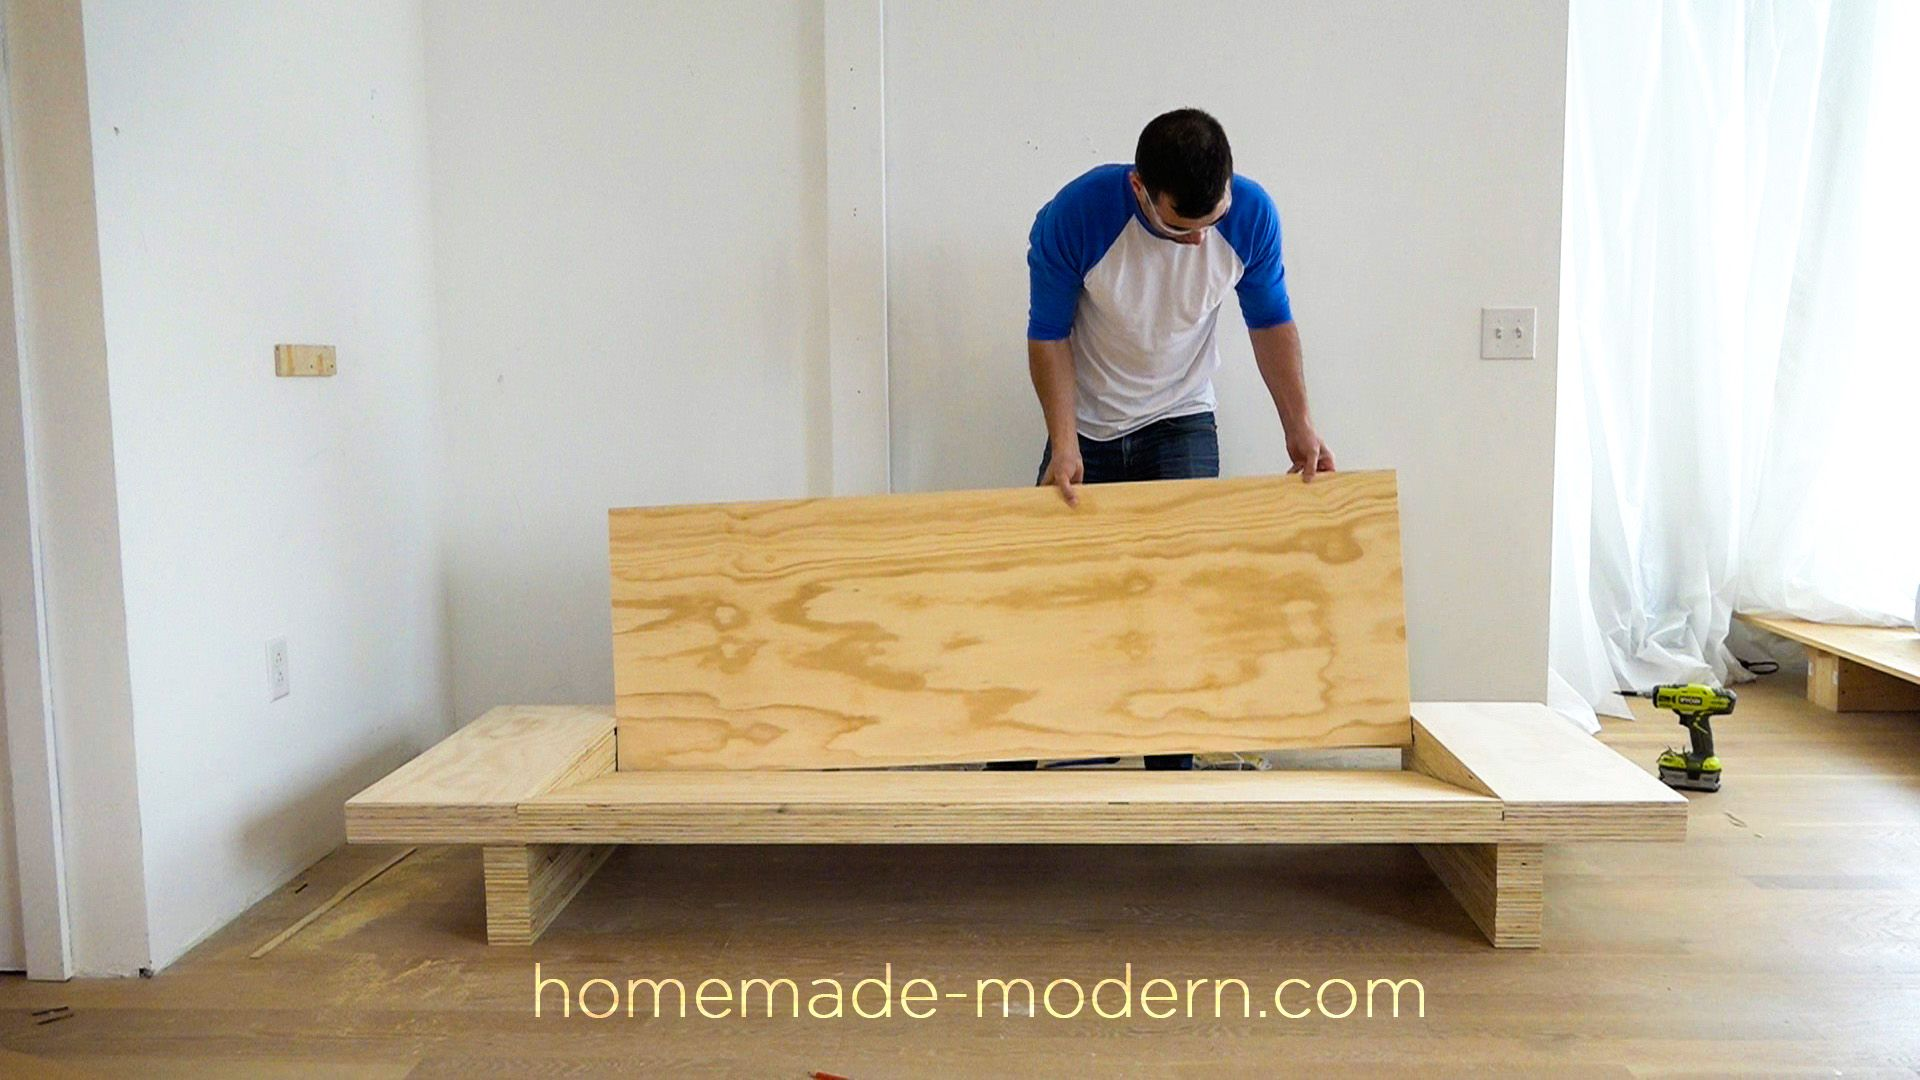 This Diy Modern Plywood Sofa Is Made Out Of 2 1 2 Sheets Of Plywood From Home Depot Full Instruct Diy Bench Cushion Diy Furniture Projects Homemade Modern